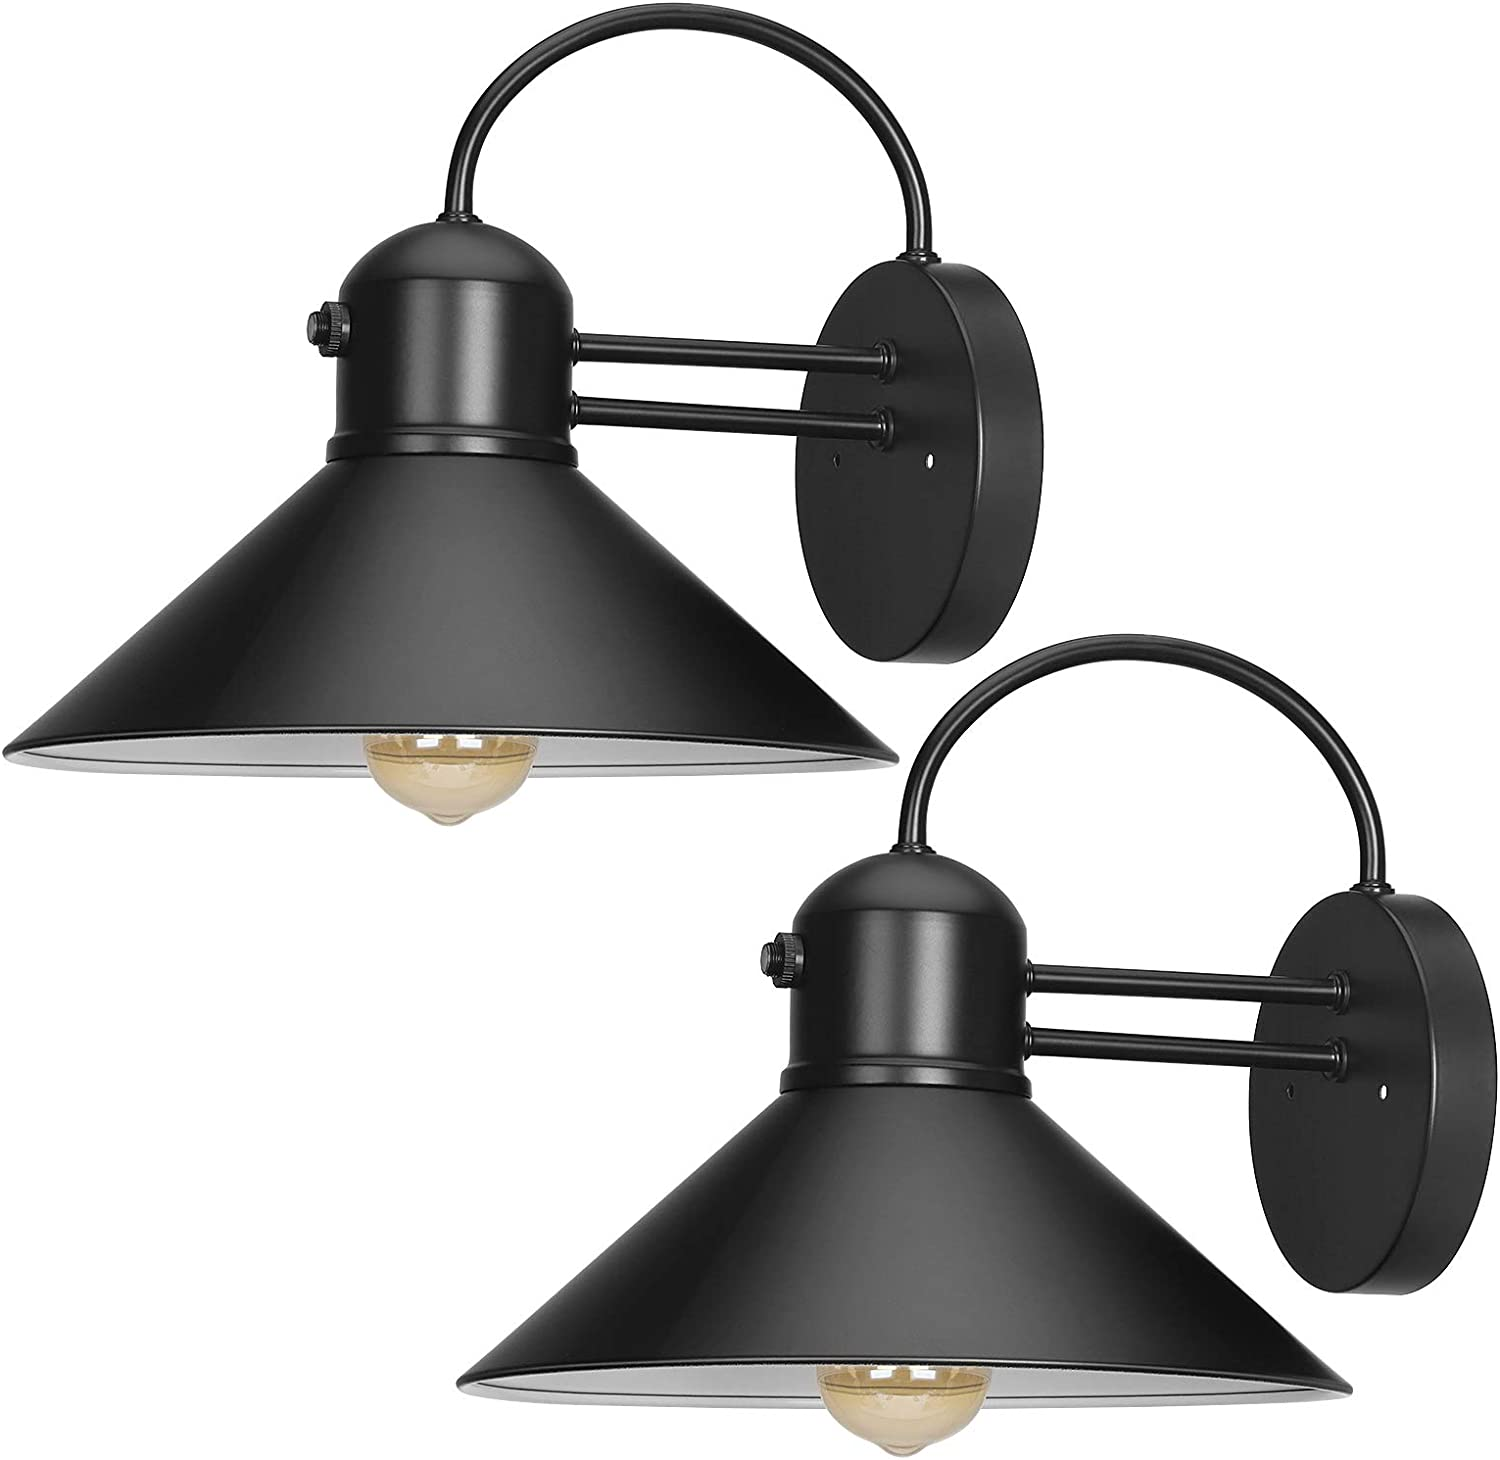 Bombing free shipping DEWENWILS 2 Pack Dusk to High quality Dawn Wall Outdoor Barn Light Gooseneck